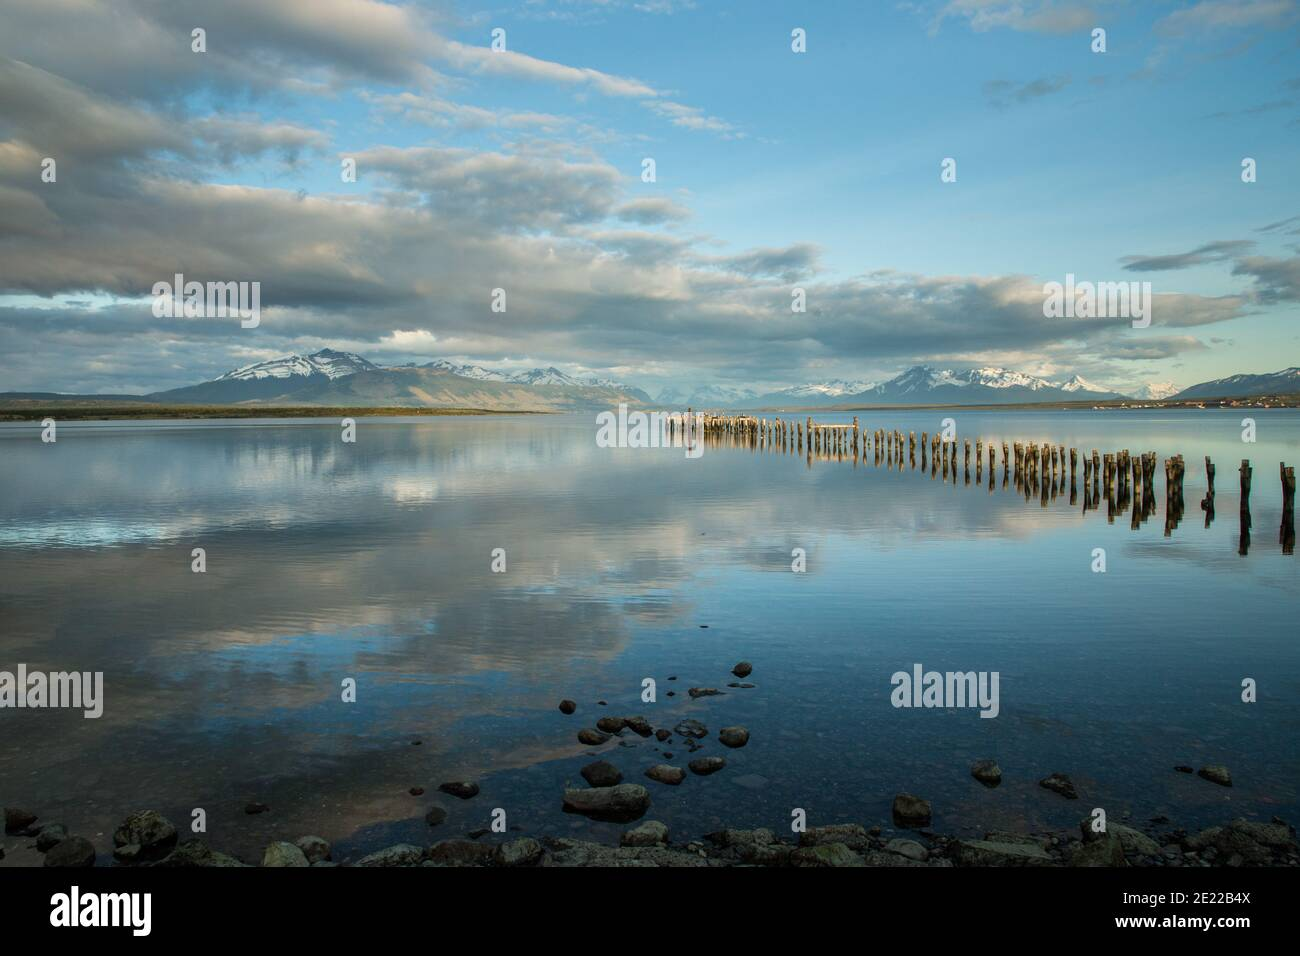 Old wooden jetty reflected in waters of the Ultima Esperanze Sound / Golfo Almirante Montt Puerto Natales, Patagonia, Chile, Andes & Torres del Paine Stock Photo